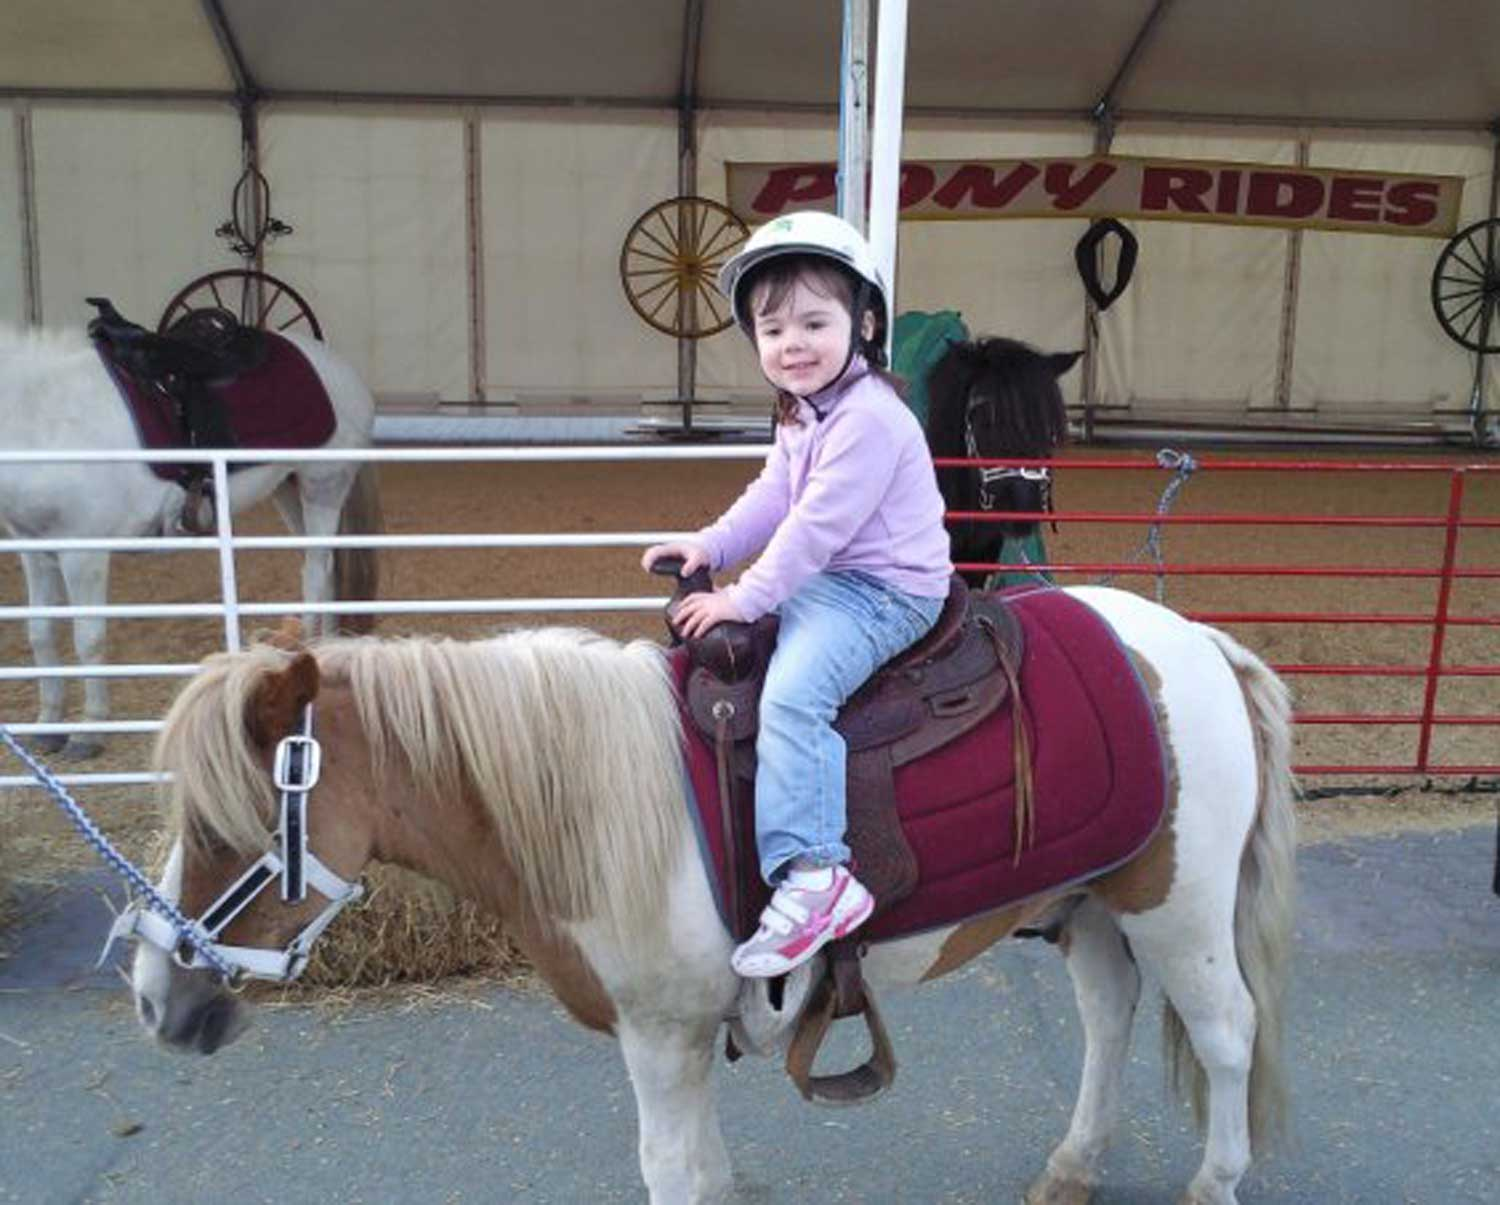 Tookii things to do with kids first pony ride one of the outdoor activities for kids